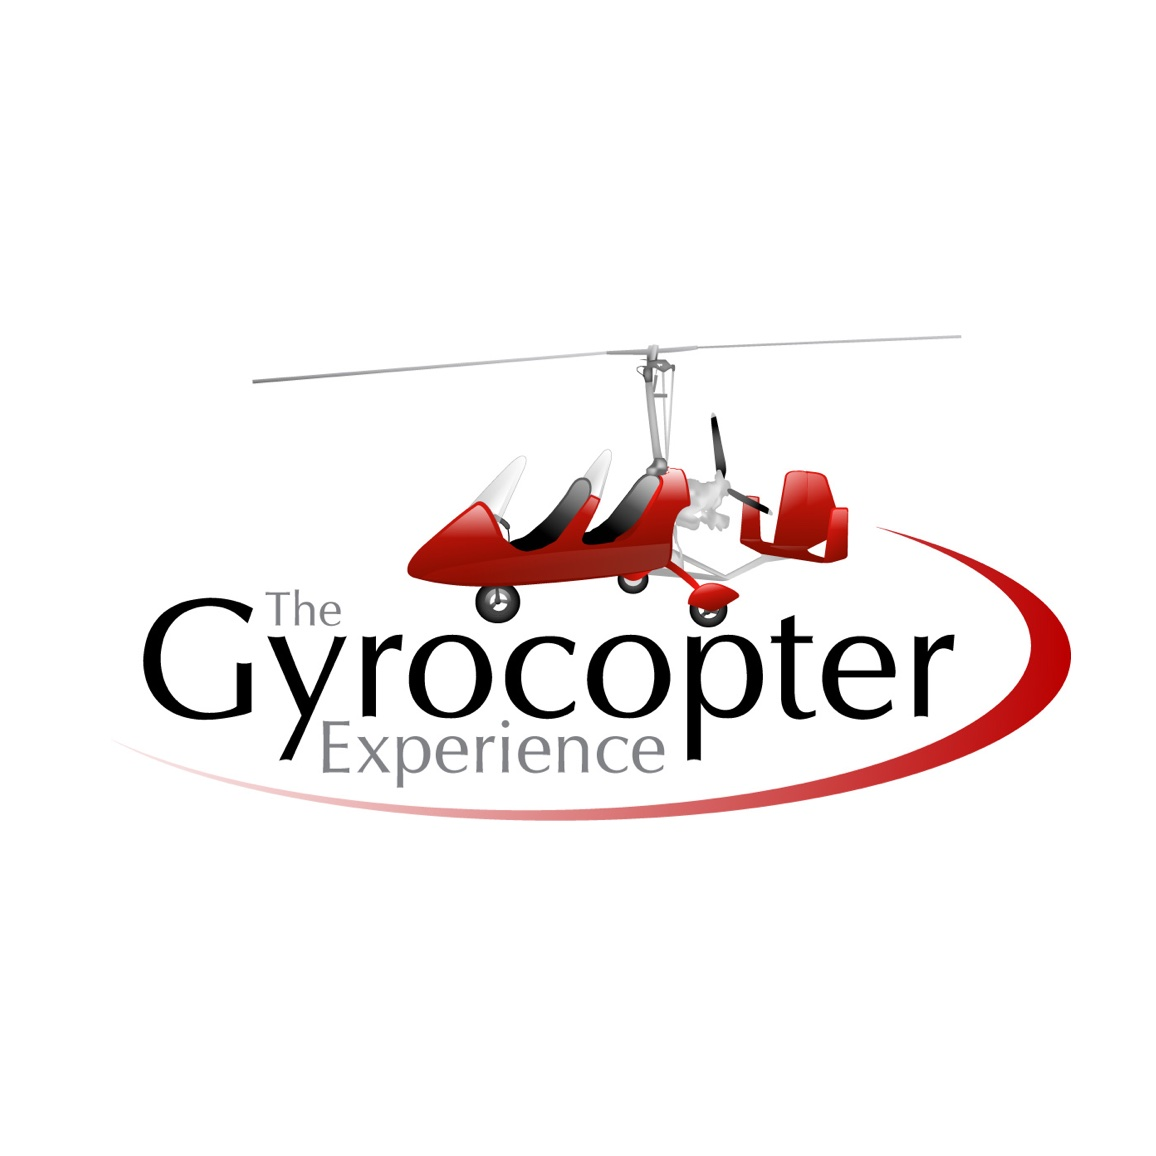 The Gyrocopter Experience Devon